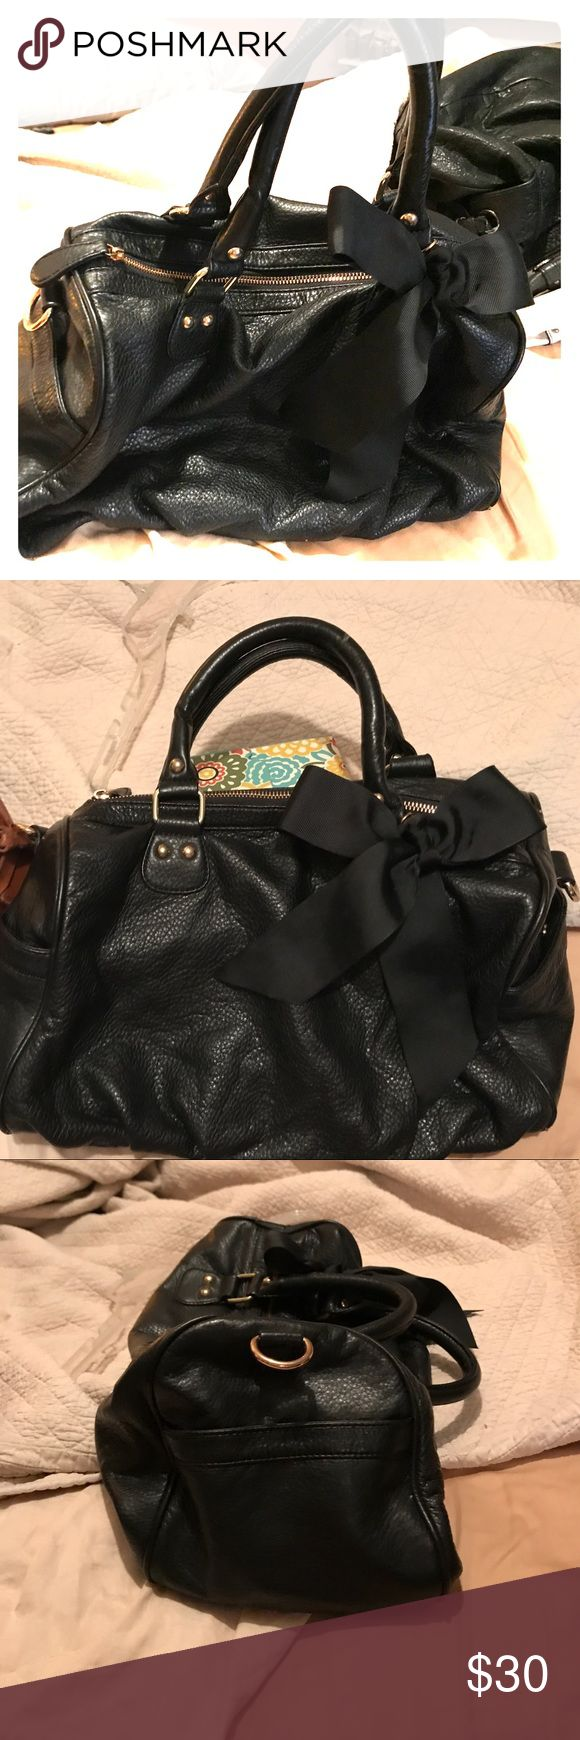 Steve Madden black purse Steve Madden black leather purse - has a few Snags but over all good condition. Has a cute bow on the front. Steve Madden Bags Totes